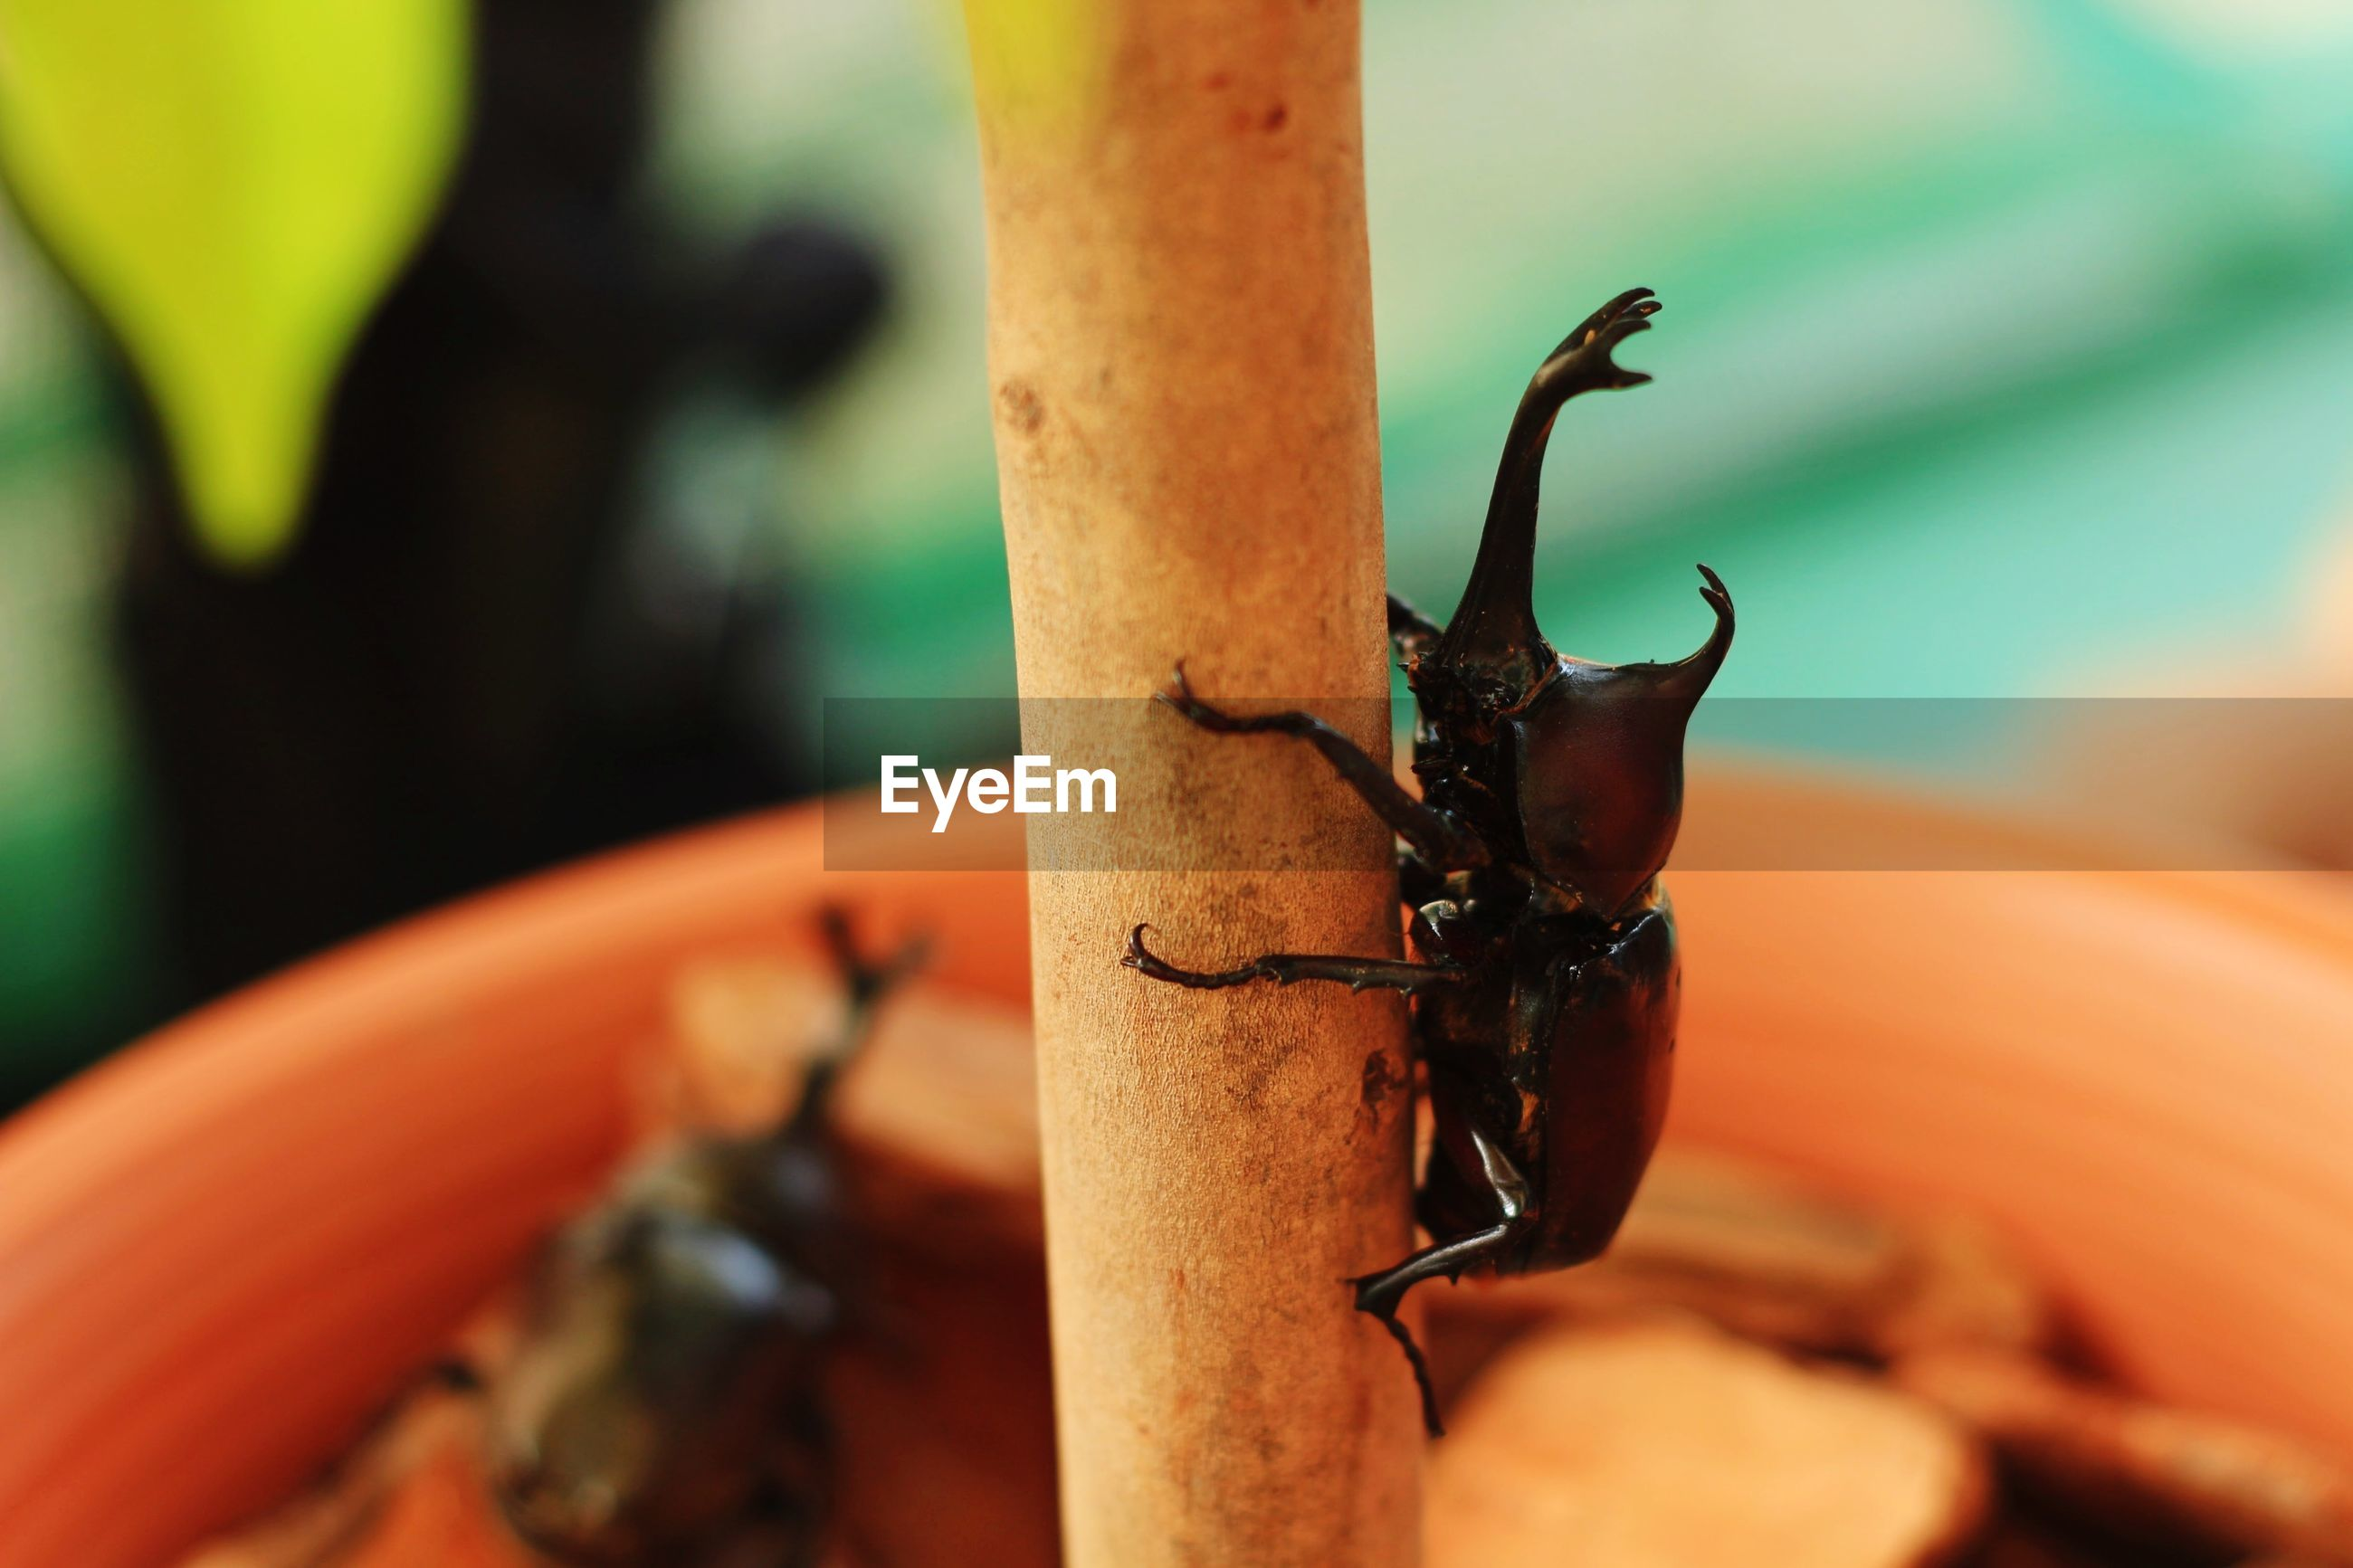 Close-up of five horn rhino beetle on potted plant outdoors